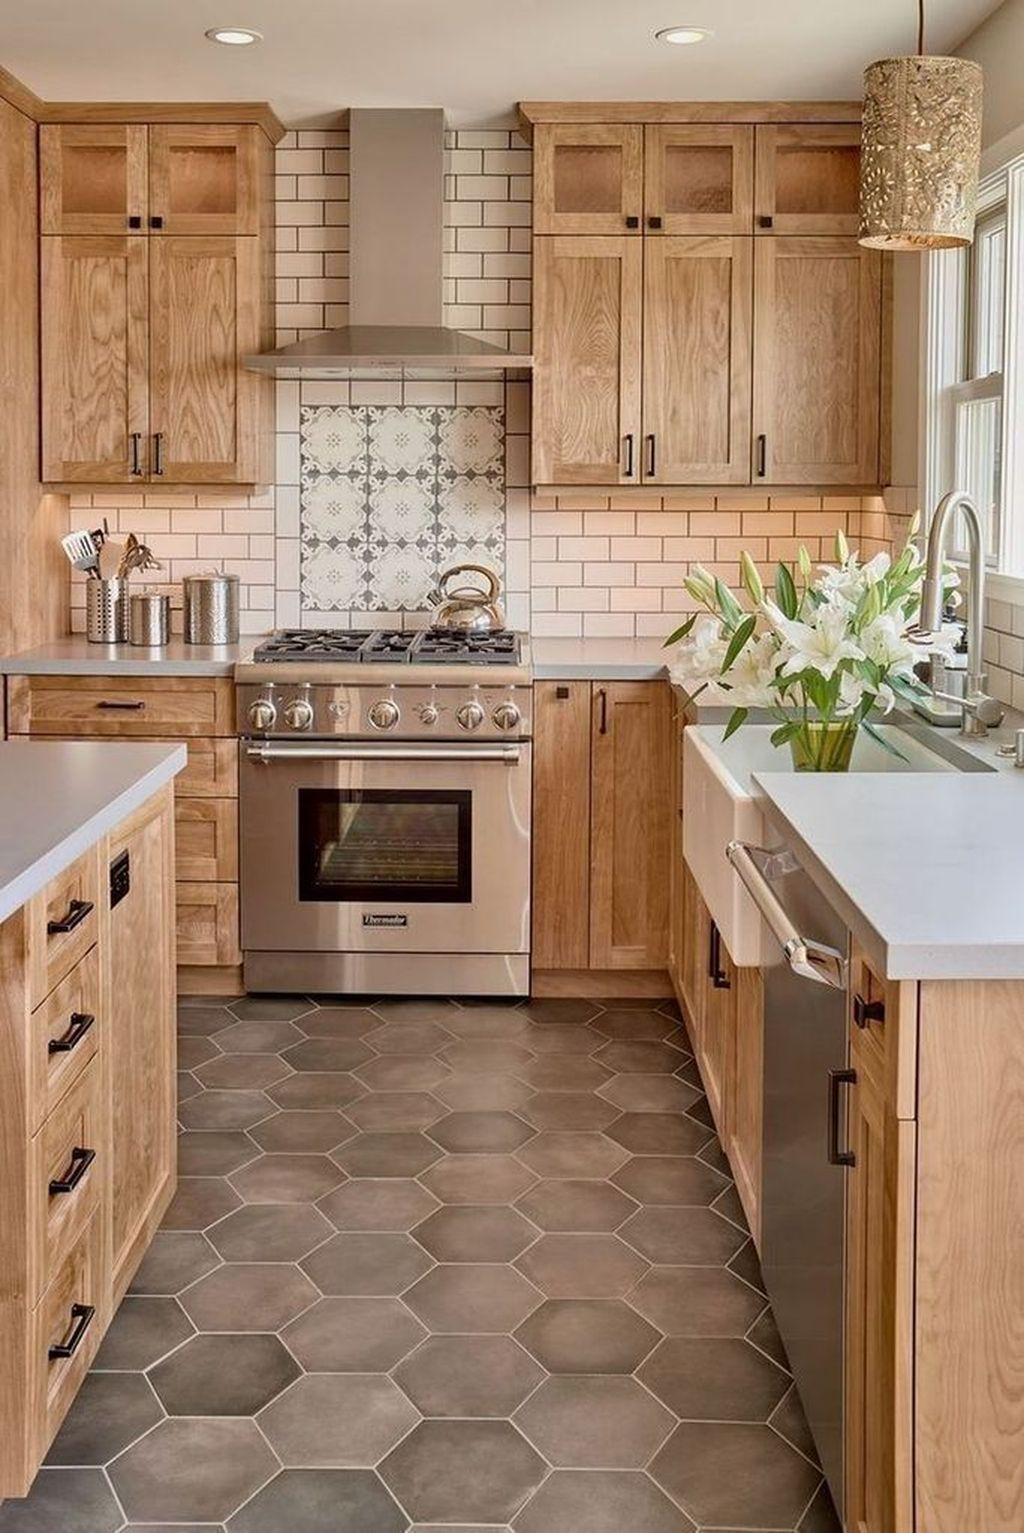 Popular Wooden Cabinets Design Ideas For Your Kitchen Decor 24